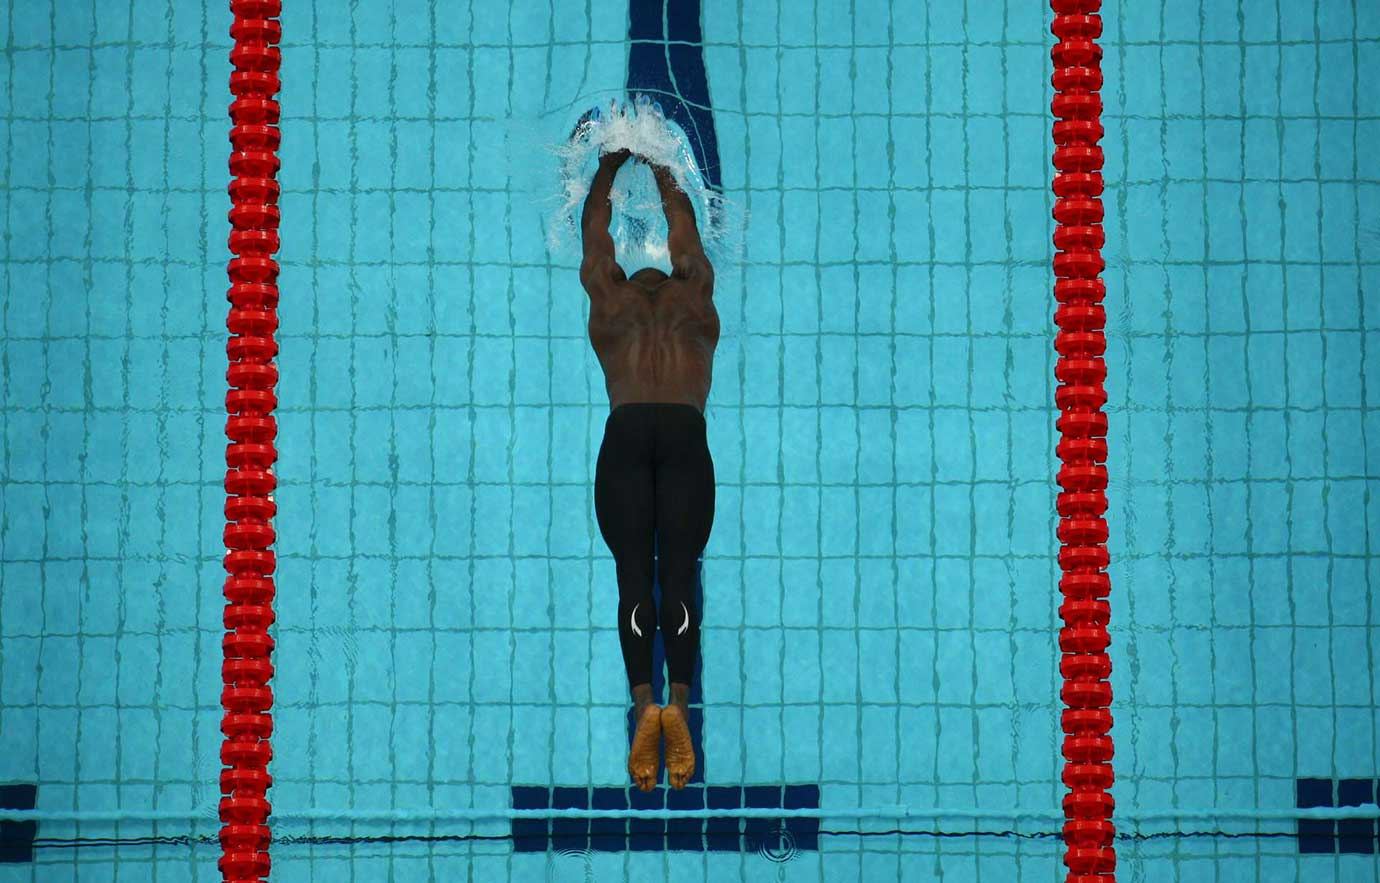 Yei Yah of Nigeria in a heat of the 50-meter freestyle at the 2008 Olympic Games in Beijing.